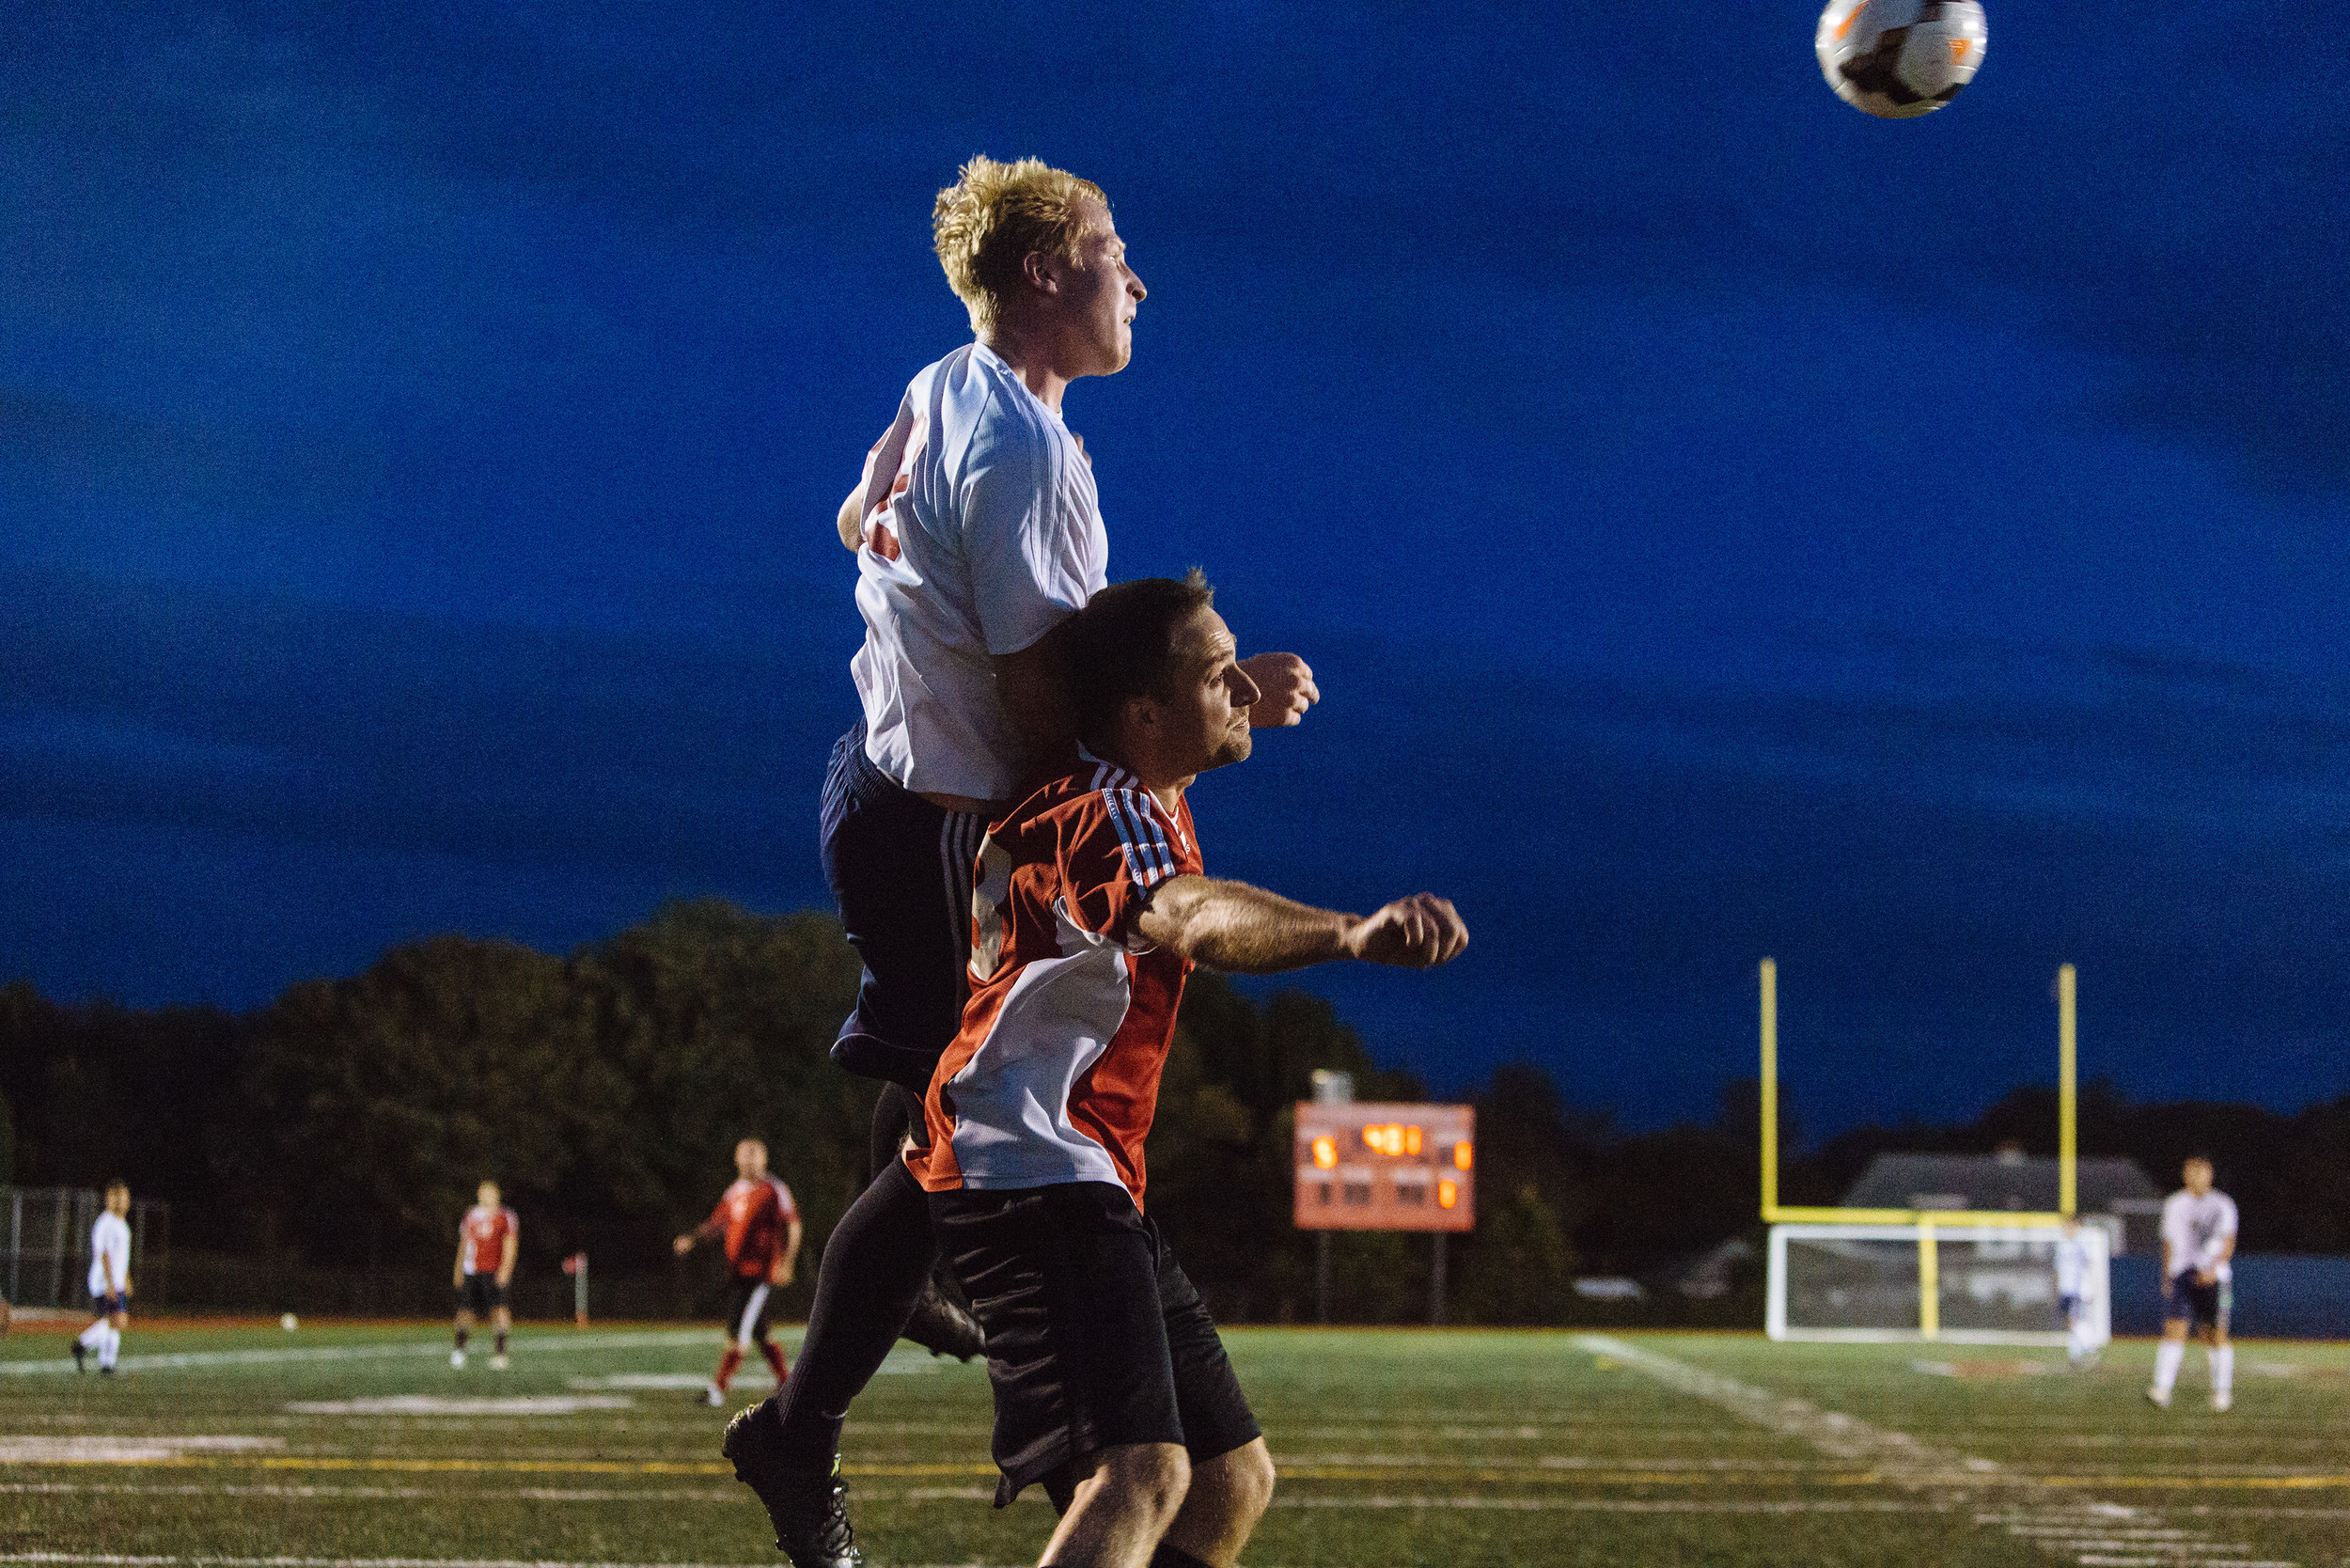 PHS senior Will Swart (left) heads the ball away from defender Sean Raymond, a member of the alumni team.